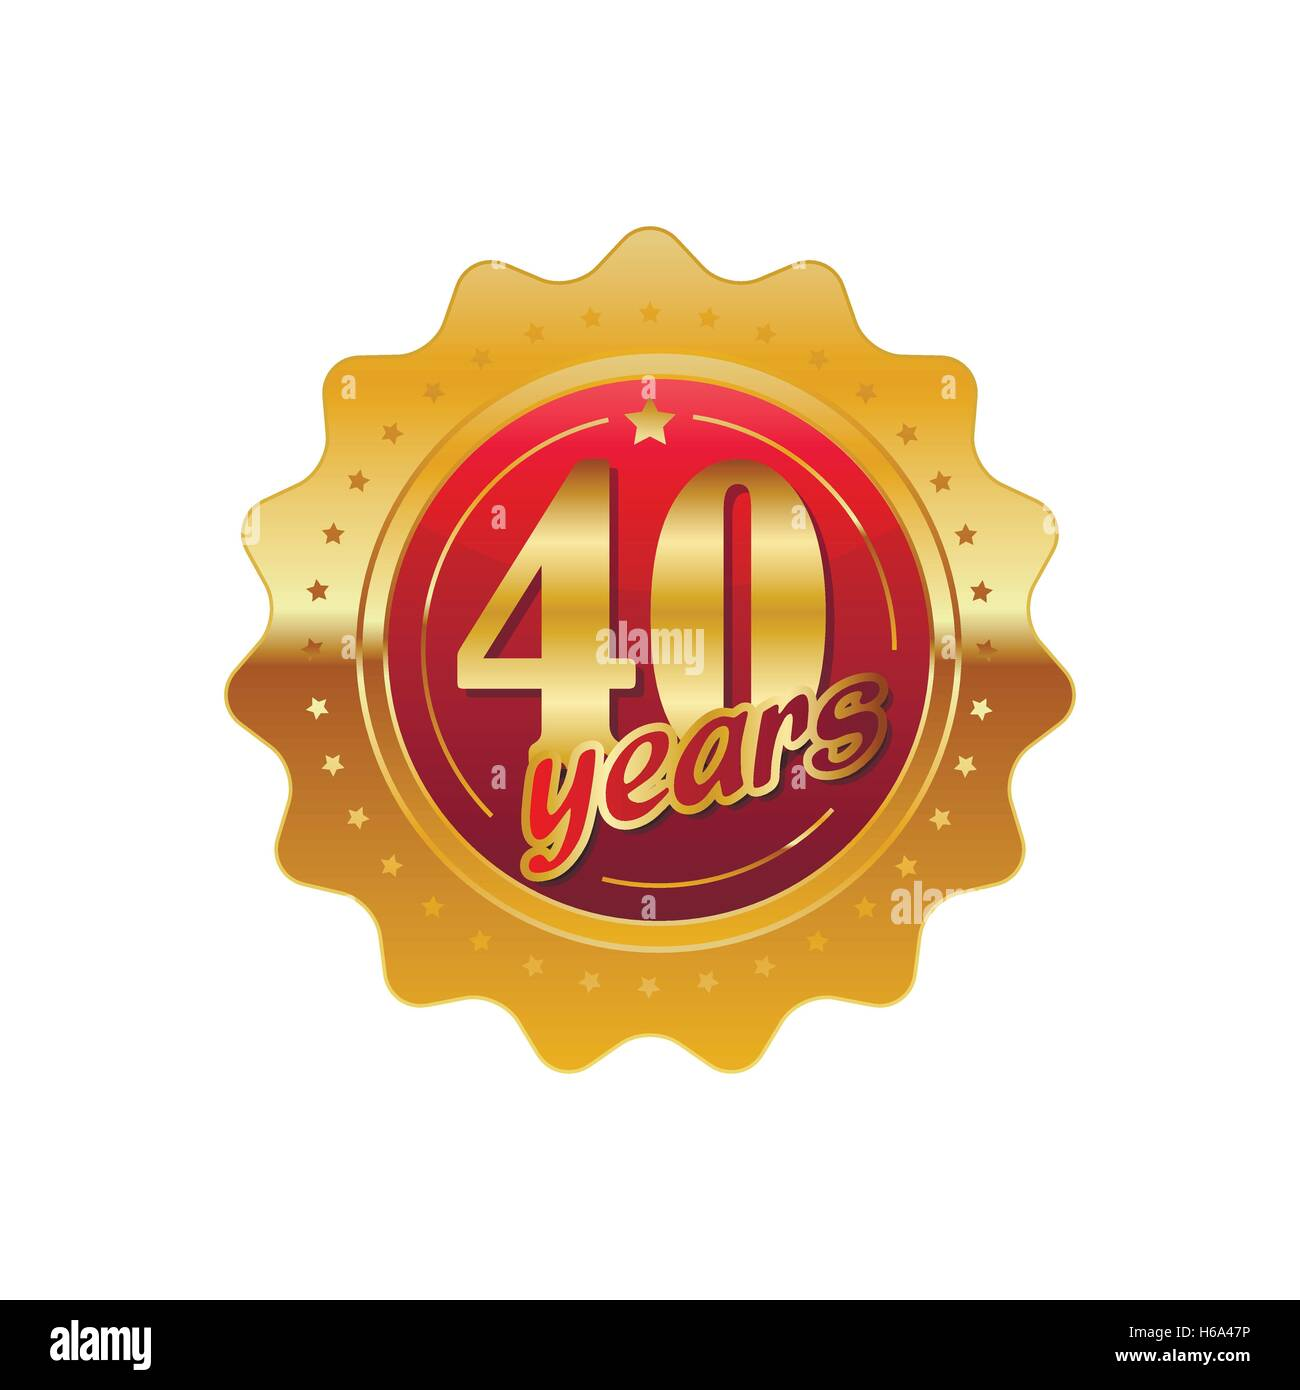 Wedding Anniversary 40th Stock Vector Images - Alamy